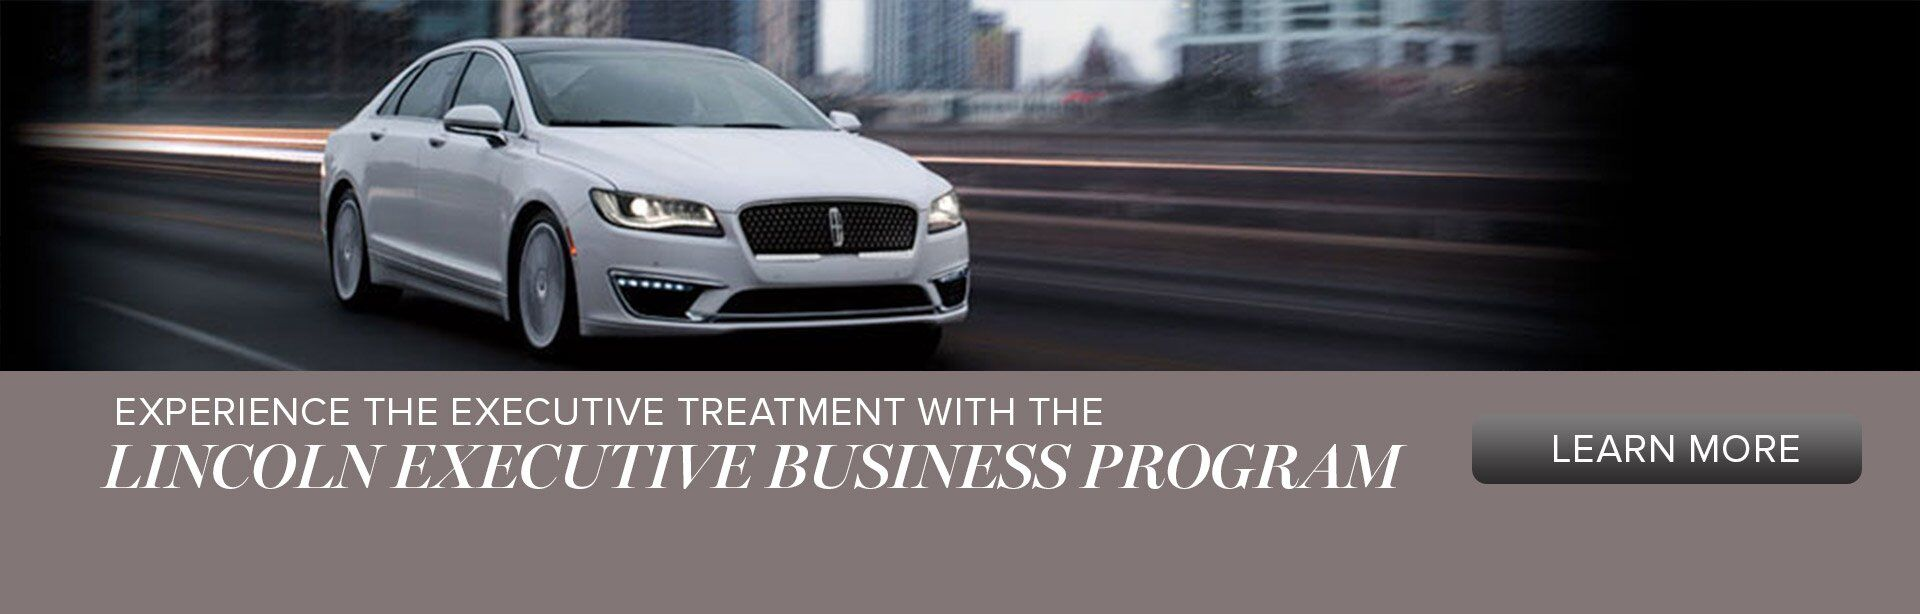 Lincoln Executive Business Program